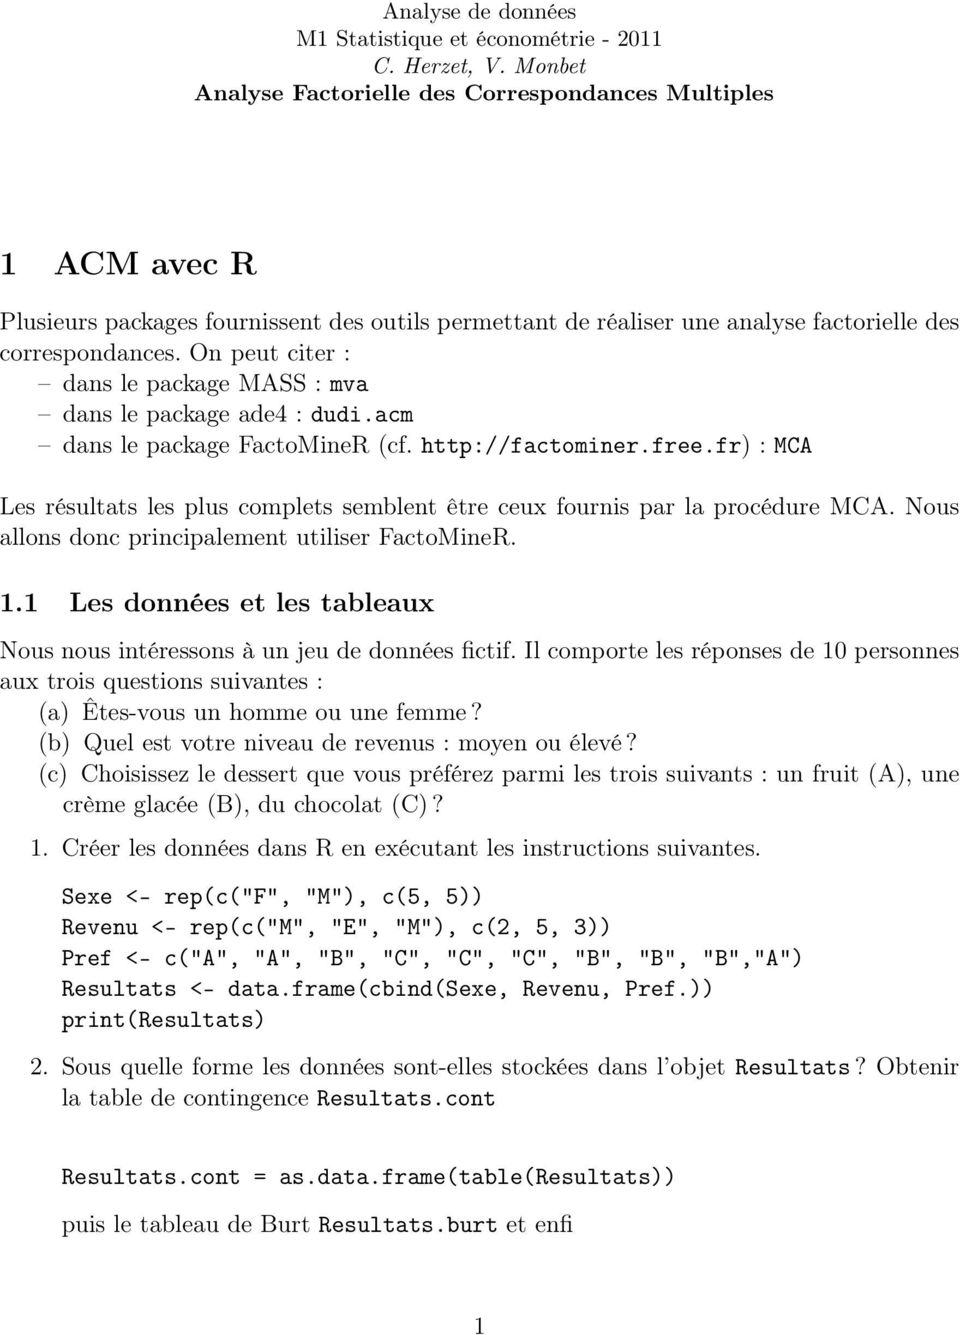 On peut citer : dans le package MASS : mva dans le package ade4 : dudi.acm dans le package FactoMineR (cf. http://factominer.free.